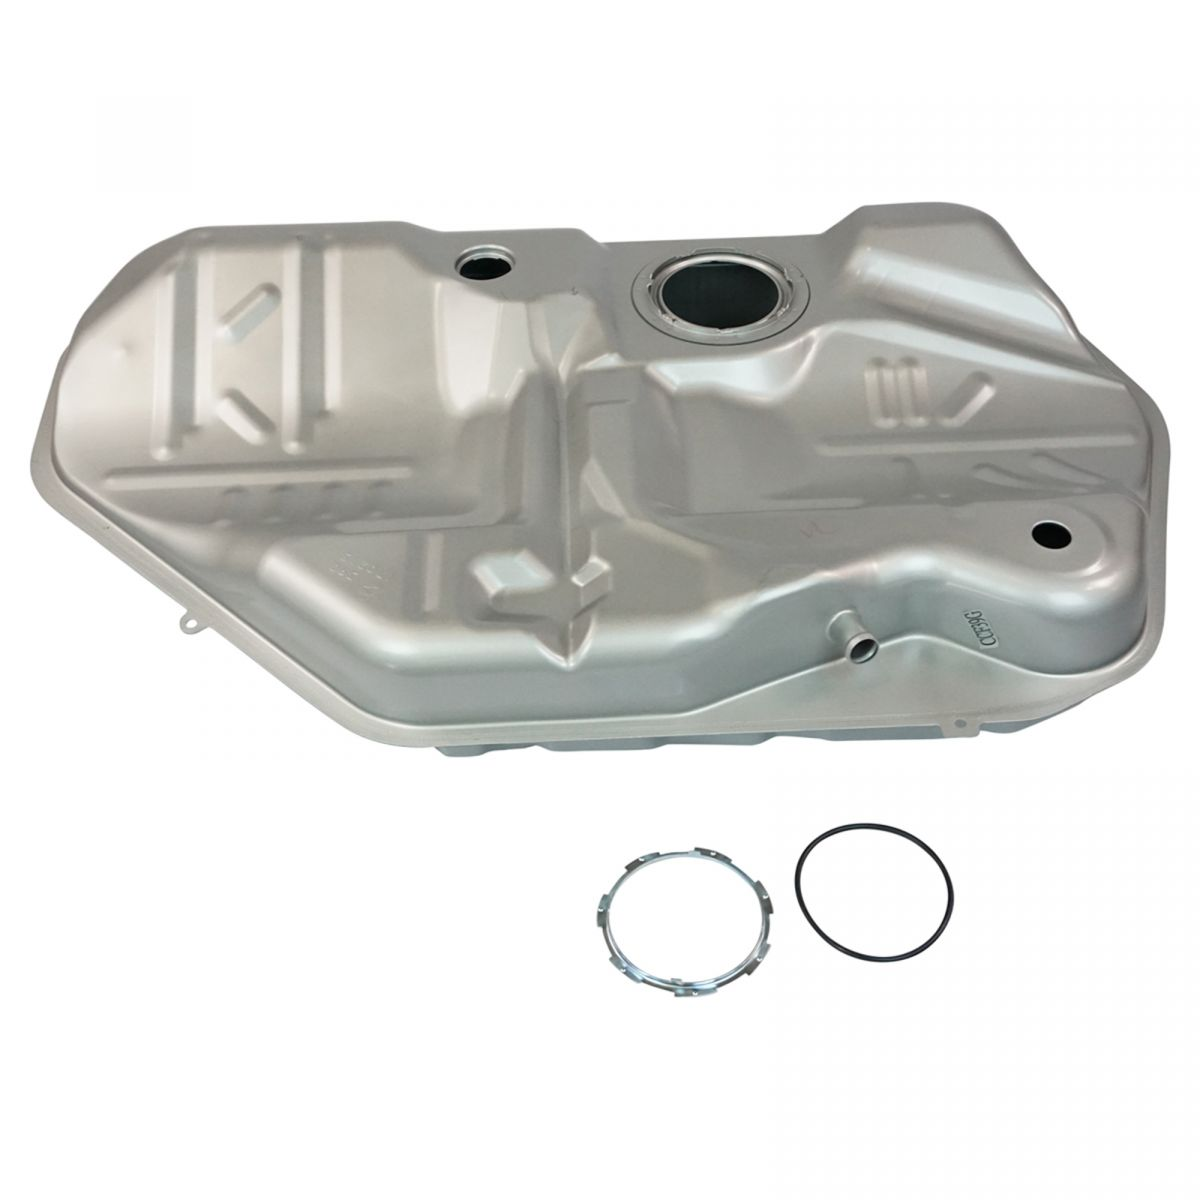 Fuel Gas Tank 18 Gallon for 00-07 Ford Taurus Mercury Sable